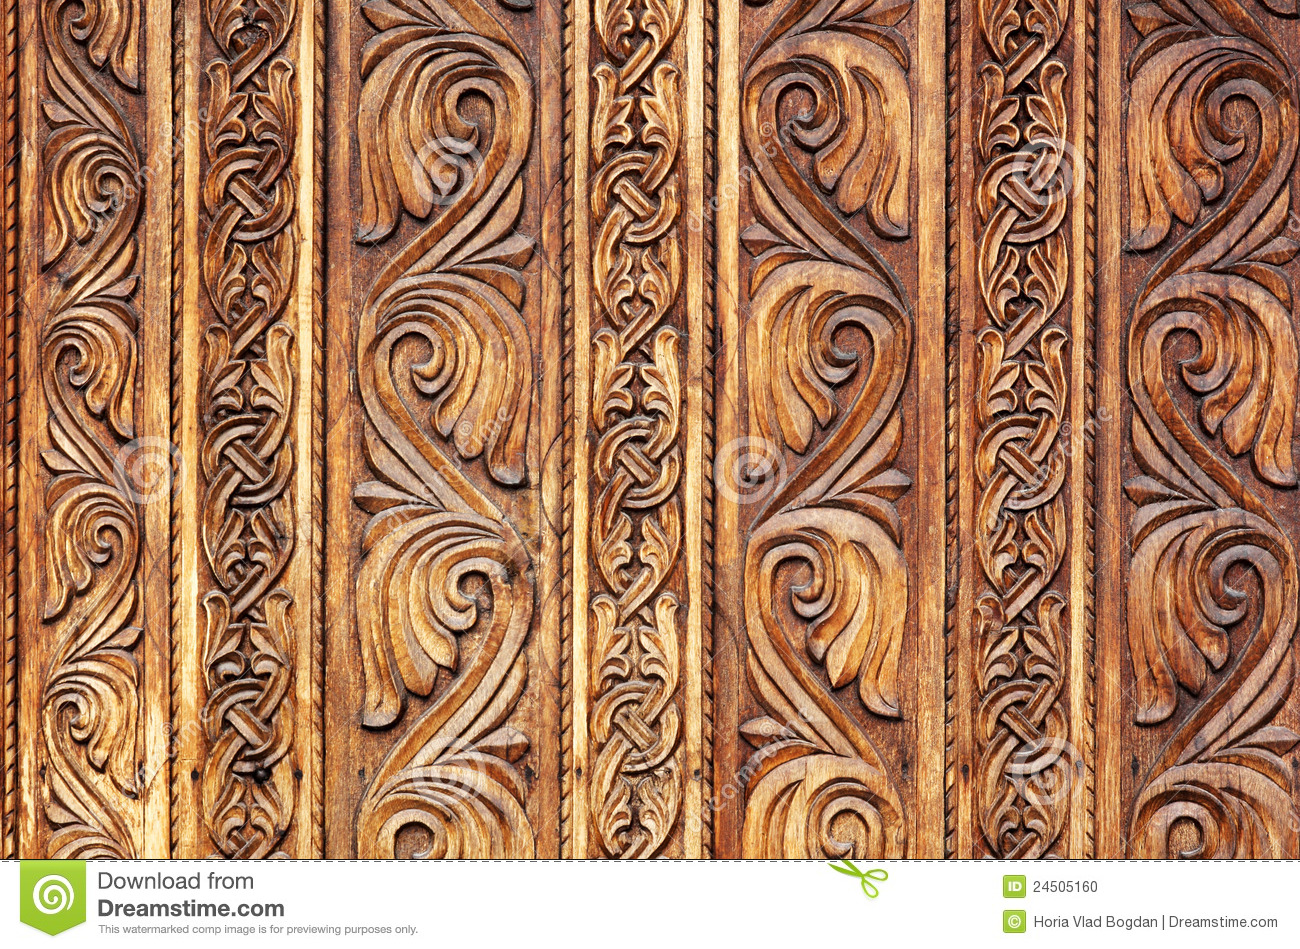 Carved wooden pattern stock photos 8 072 images for Wood carving doors hd images